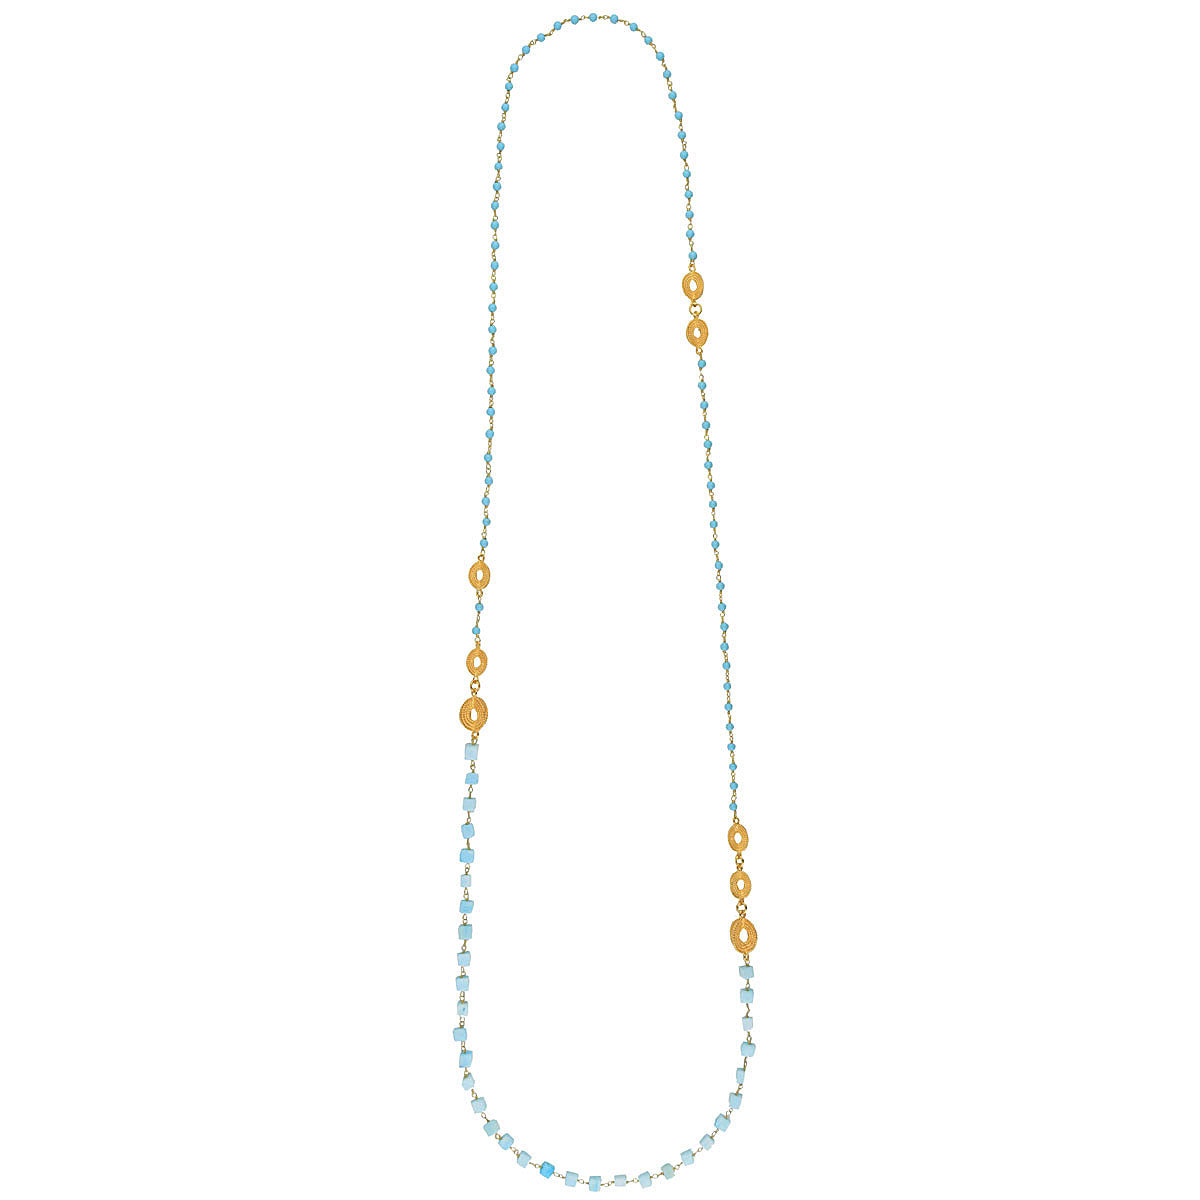 Long Necklace with Apatite and Turquoise Beads